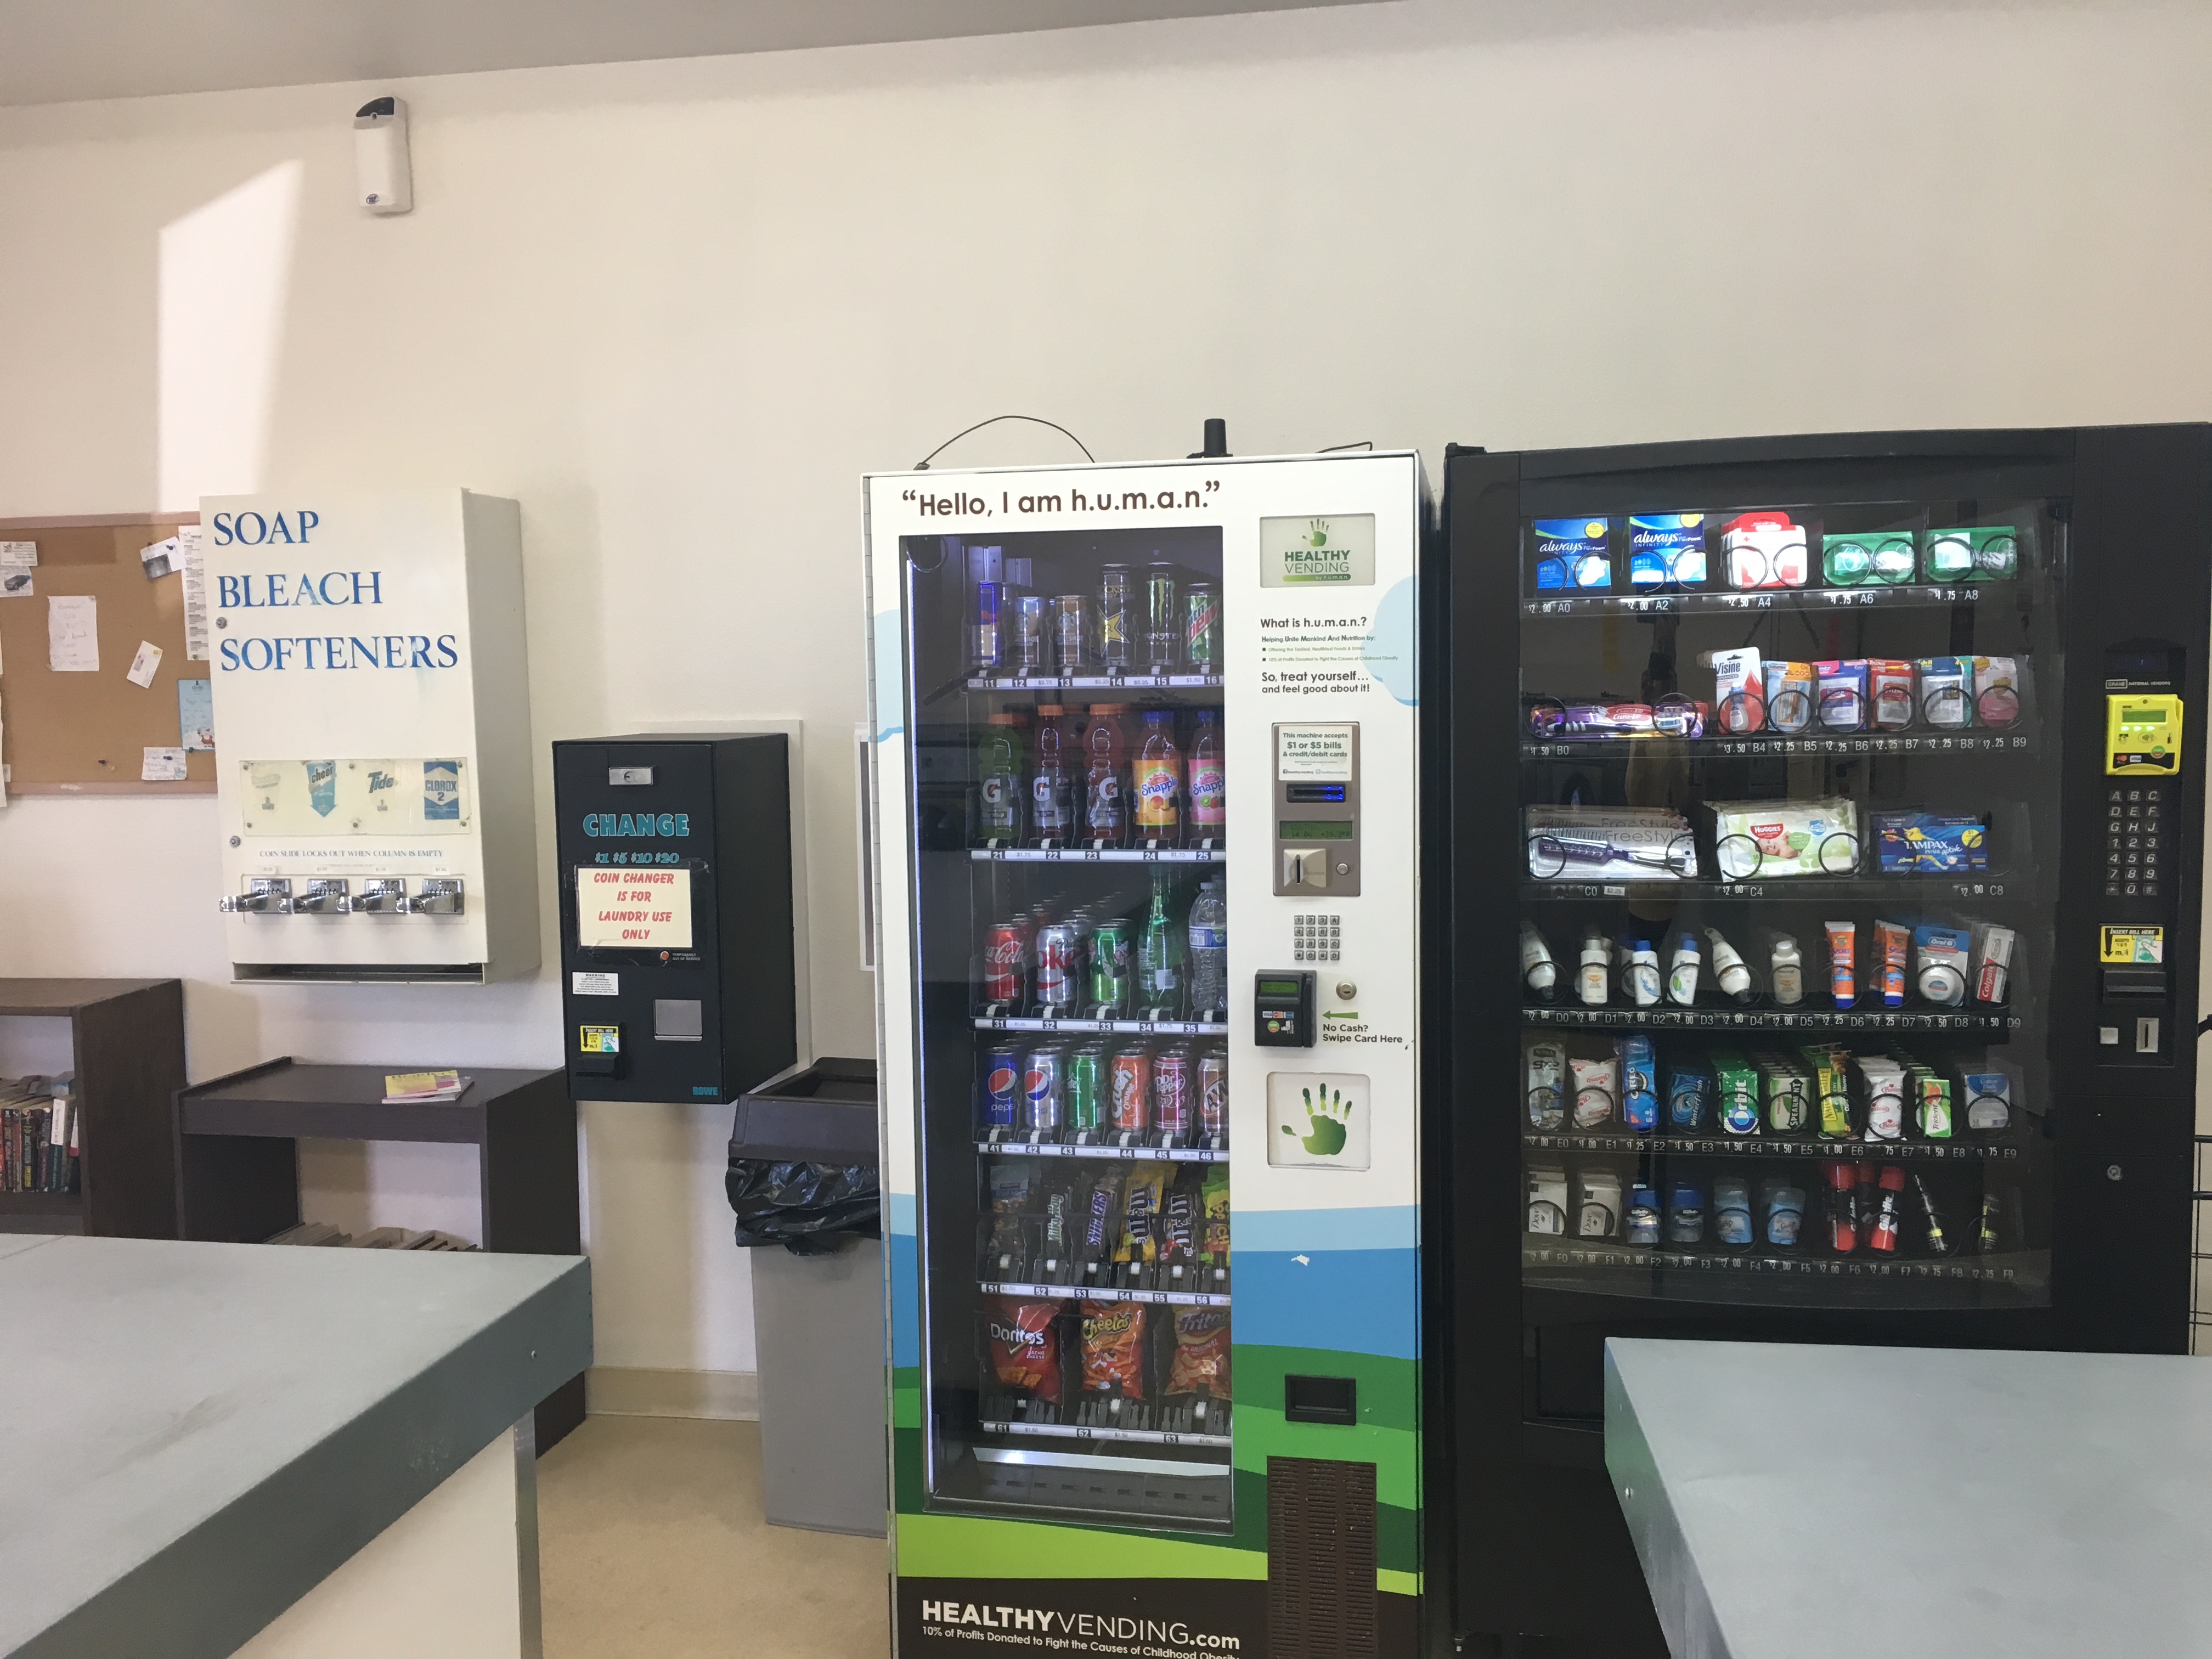 Vending machines in the laundry room